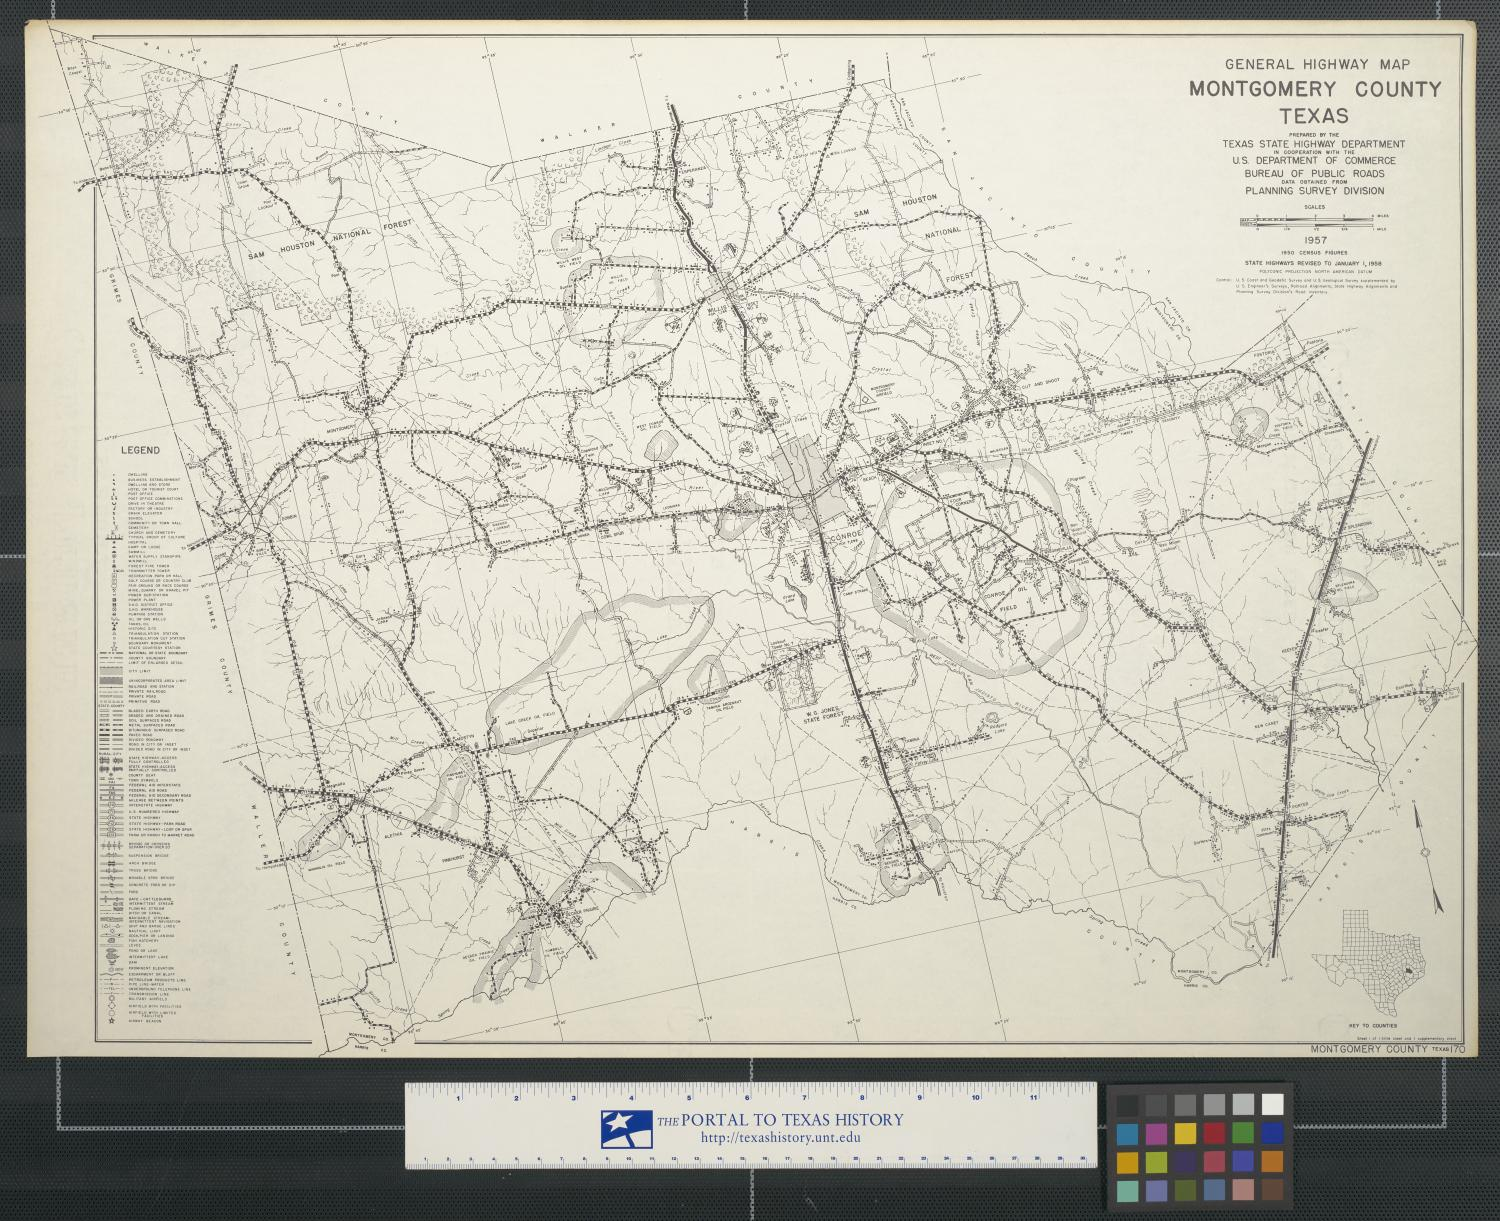 Picture of: General Highway Map Montgomery County Texas The Portal To Texas History